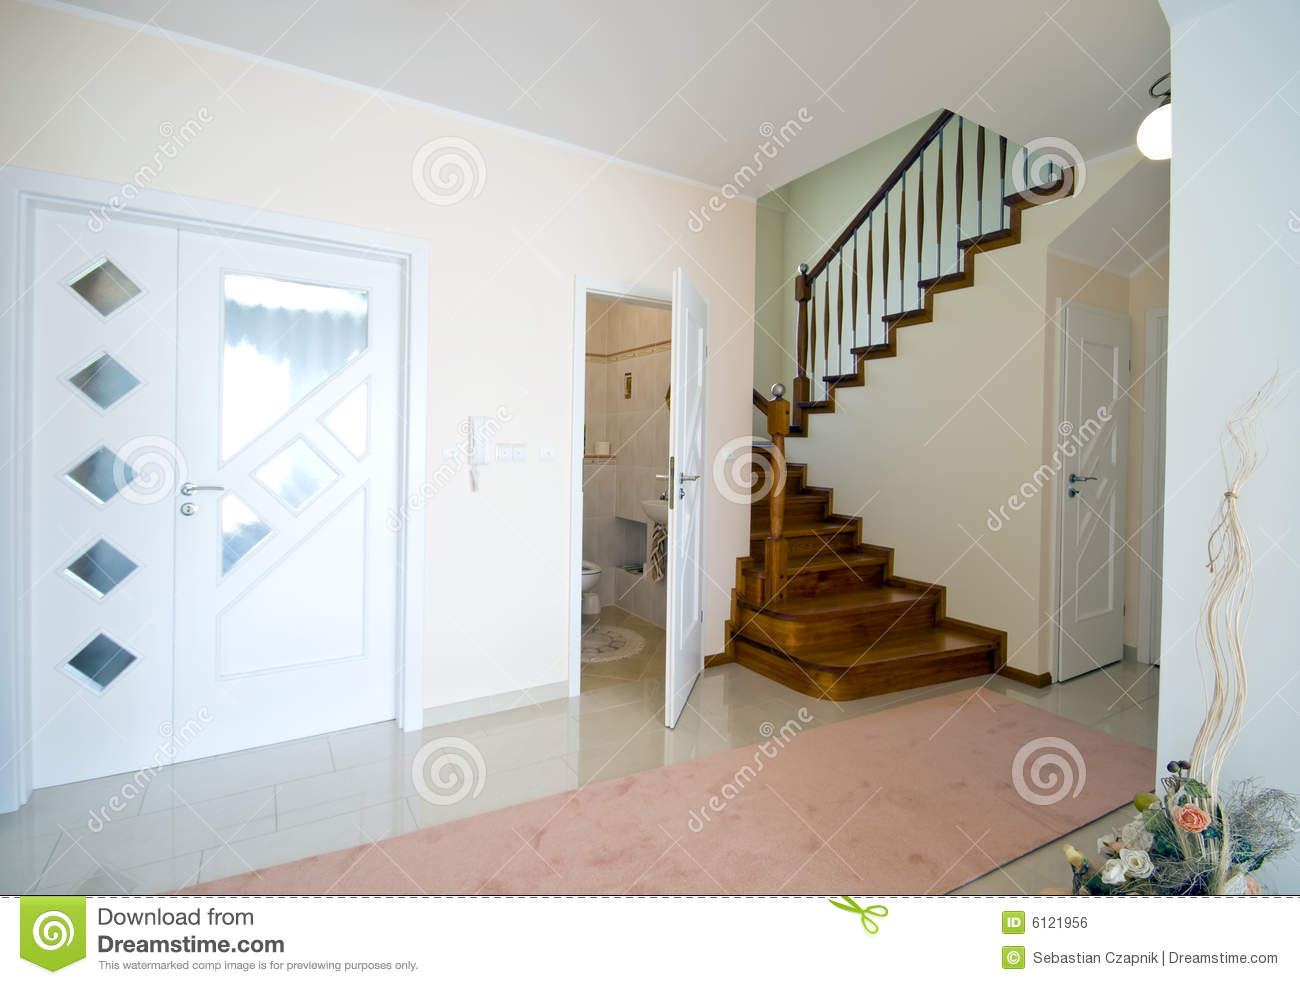 hall of modern home stock photo image of interior stairs 6121956. Black Bedroom Furniture Sets. Home Design Ideas